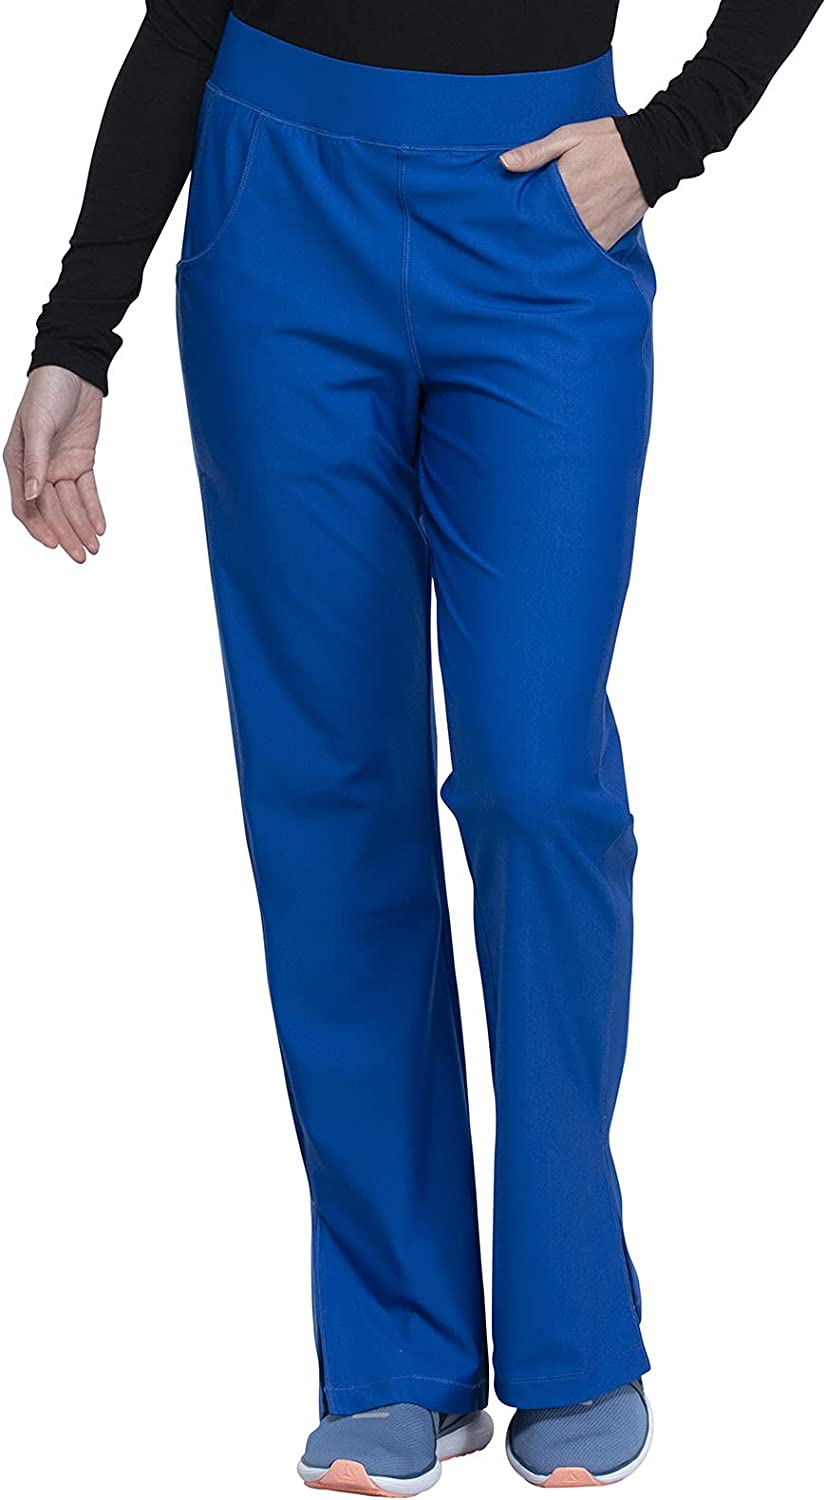 Cherokee Form Women Scrubs Pant Mid Rise Moderate Flare Leg Pull-On CK091